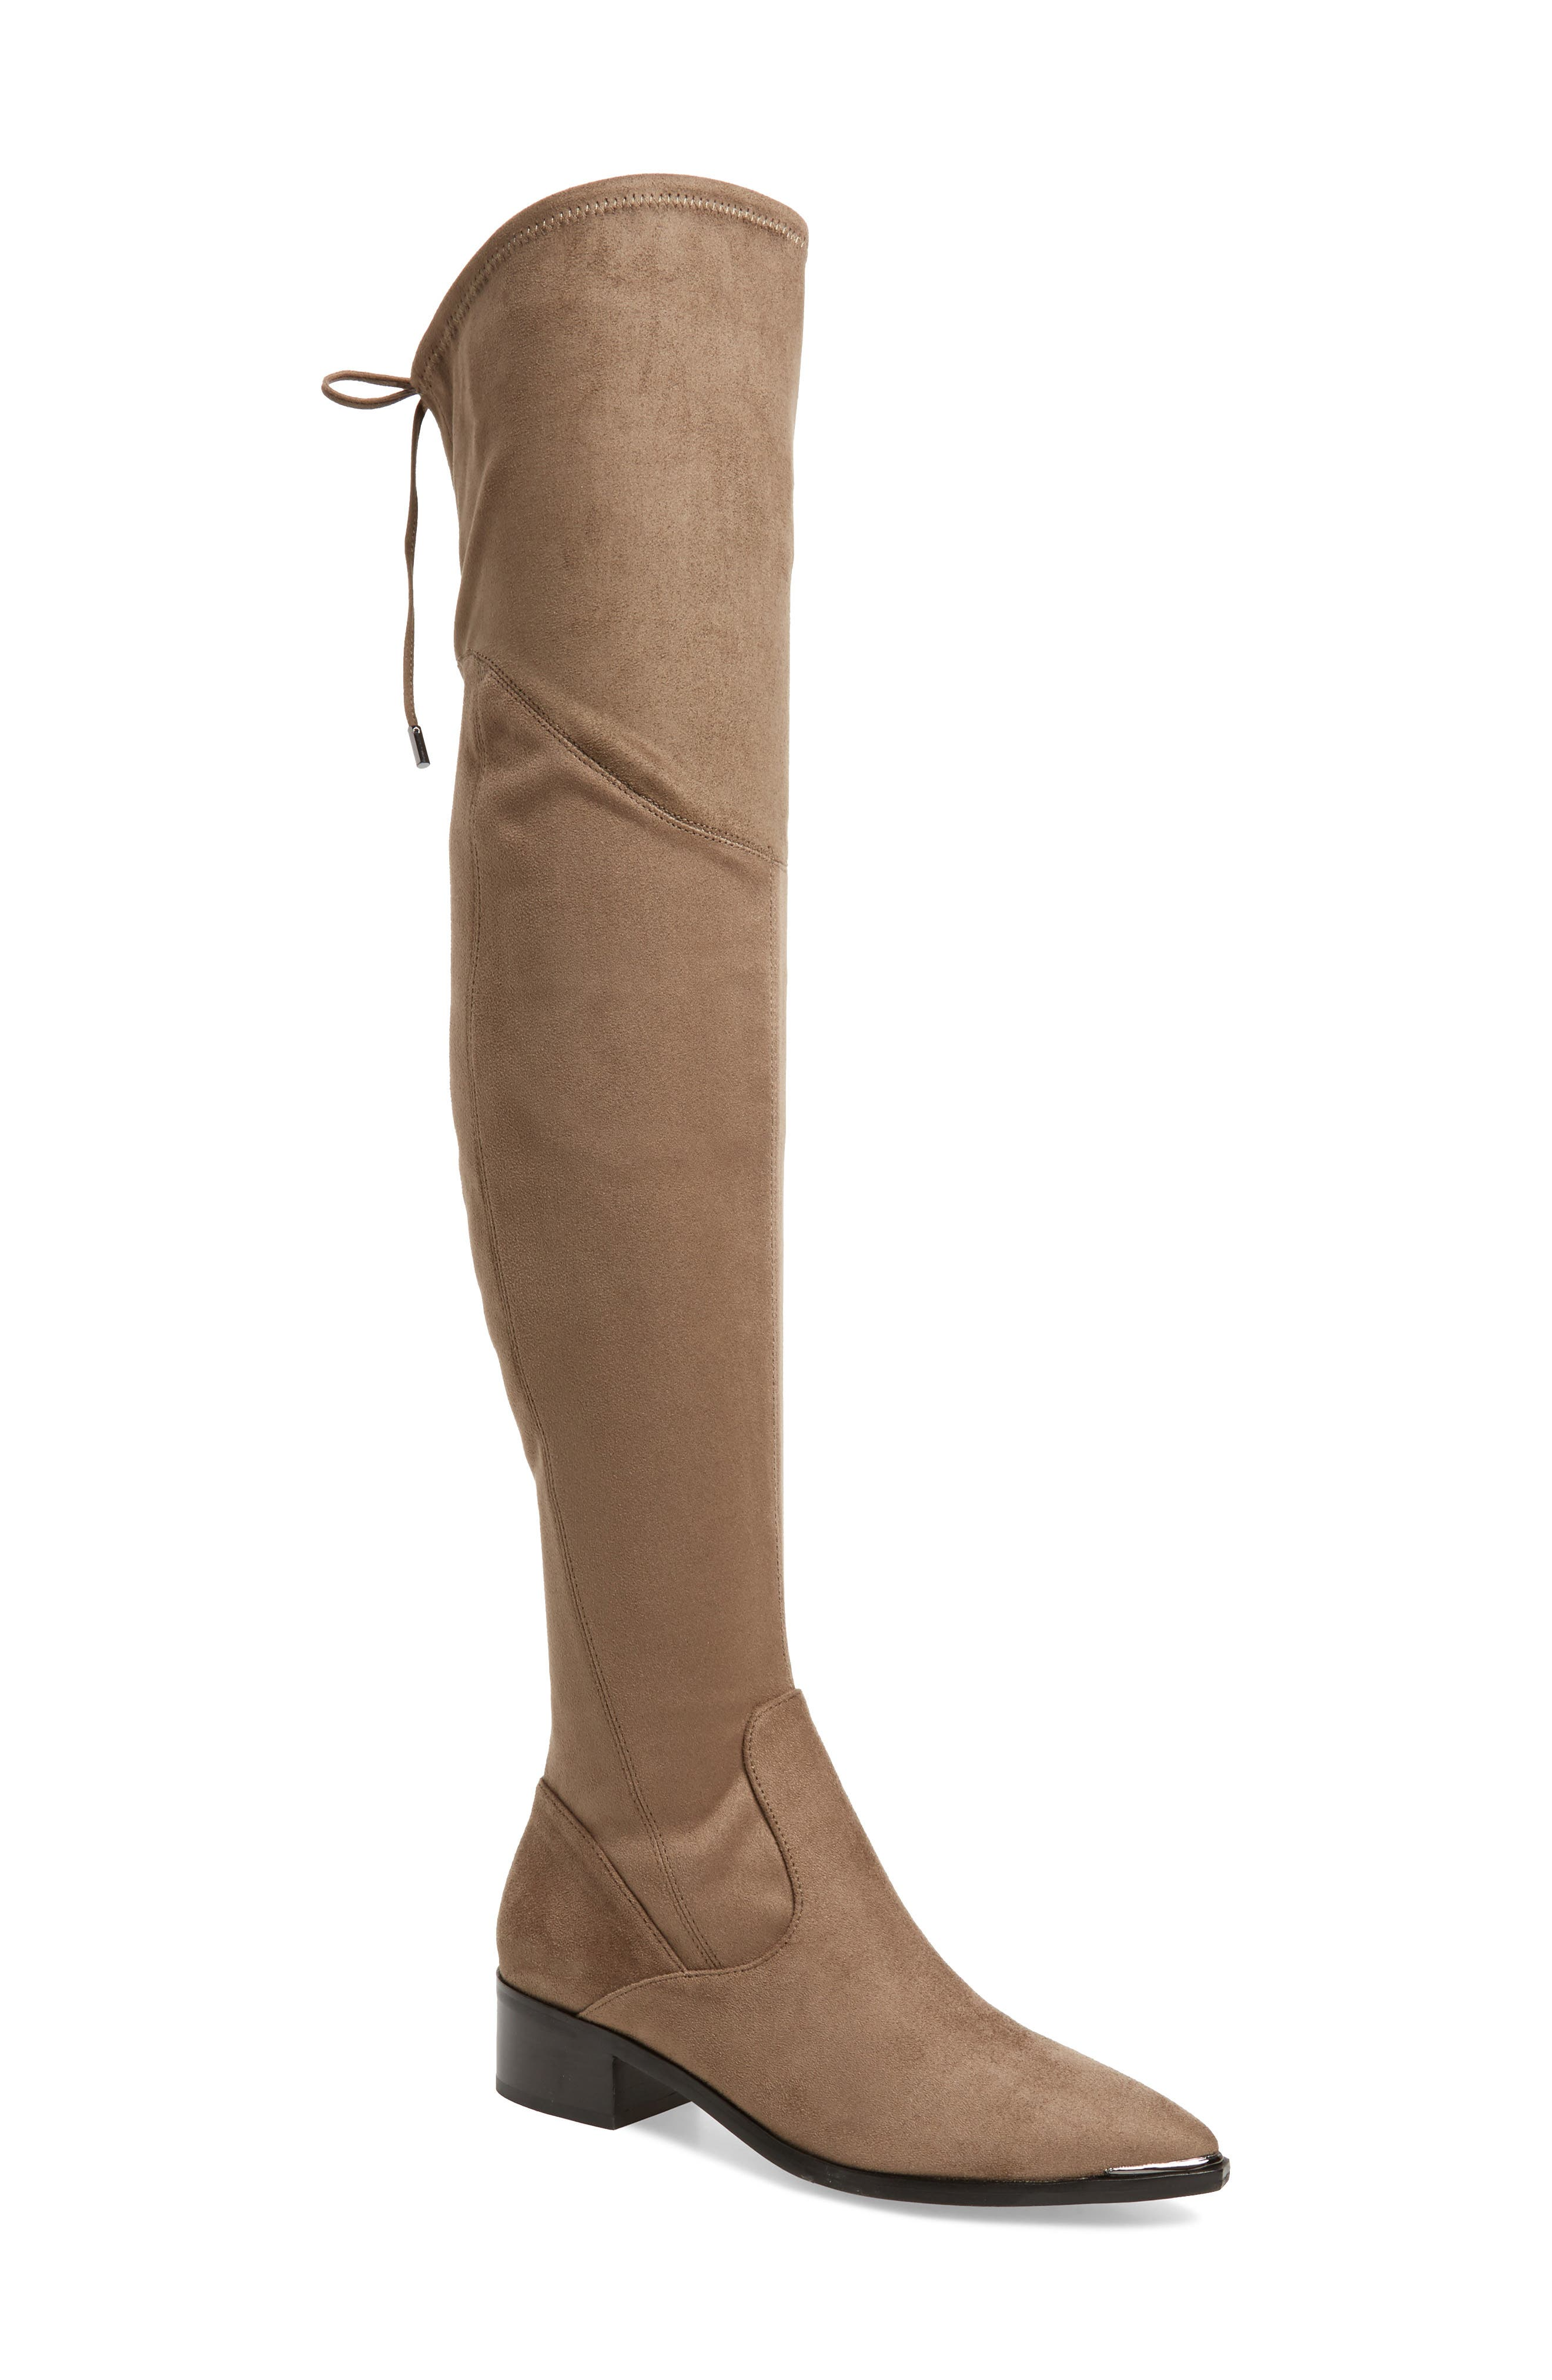 Yuna Over the Knee Boot,                         Main,                         color, TAUPE FAUX SUEDE